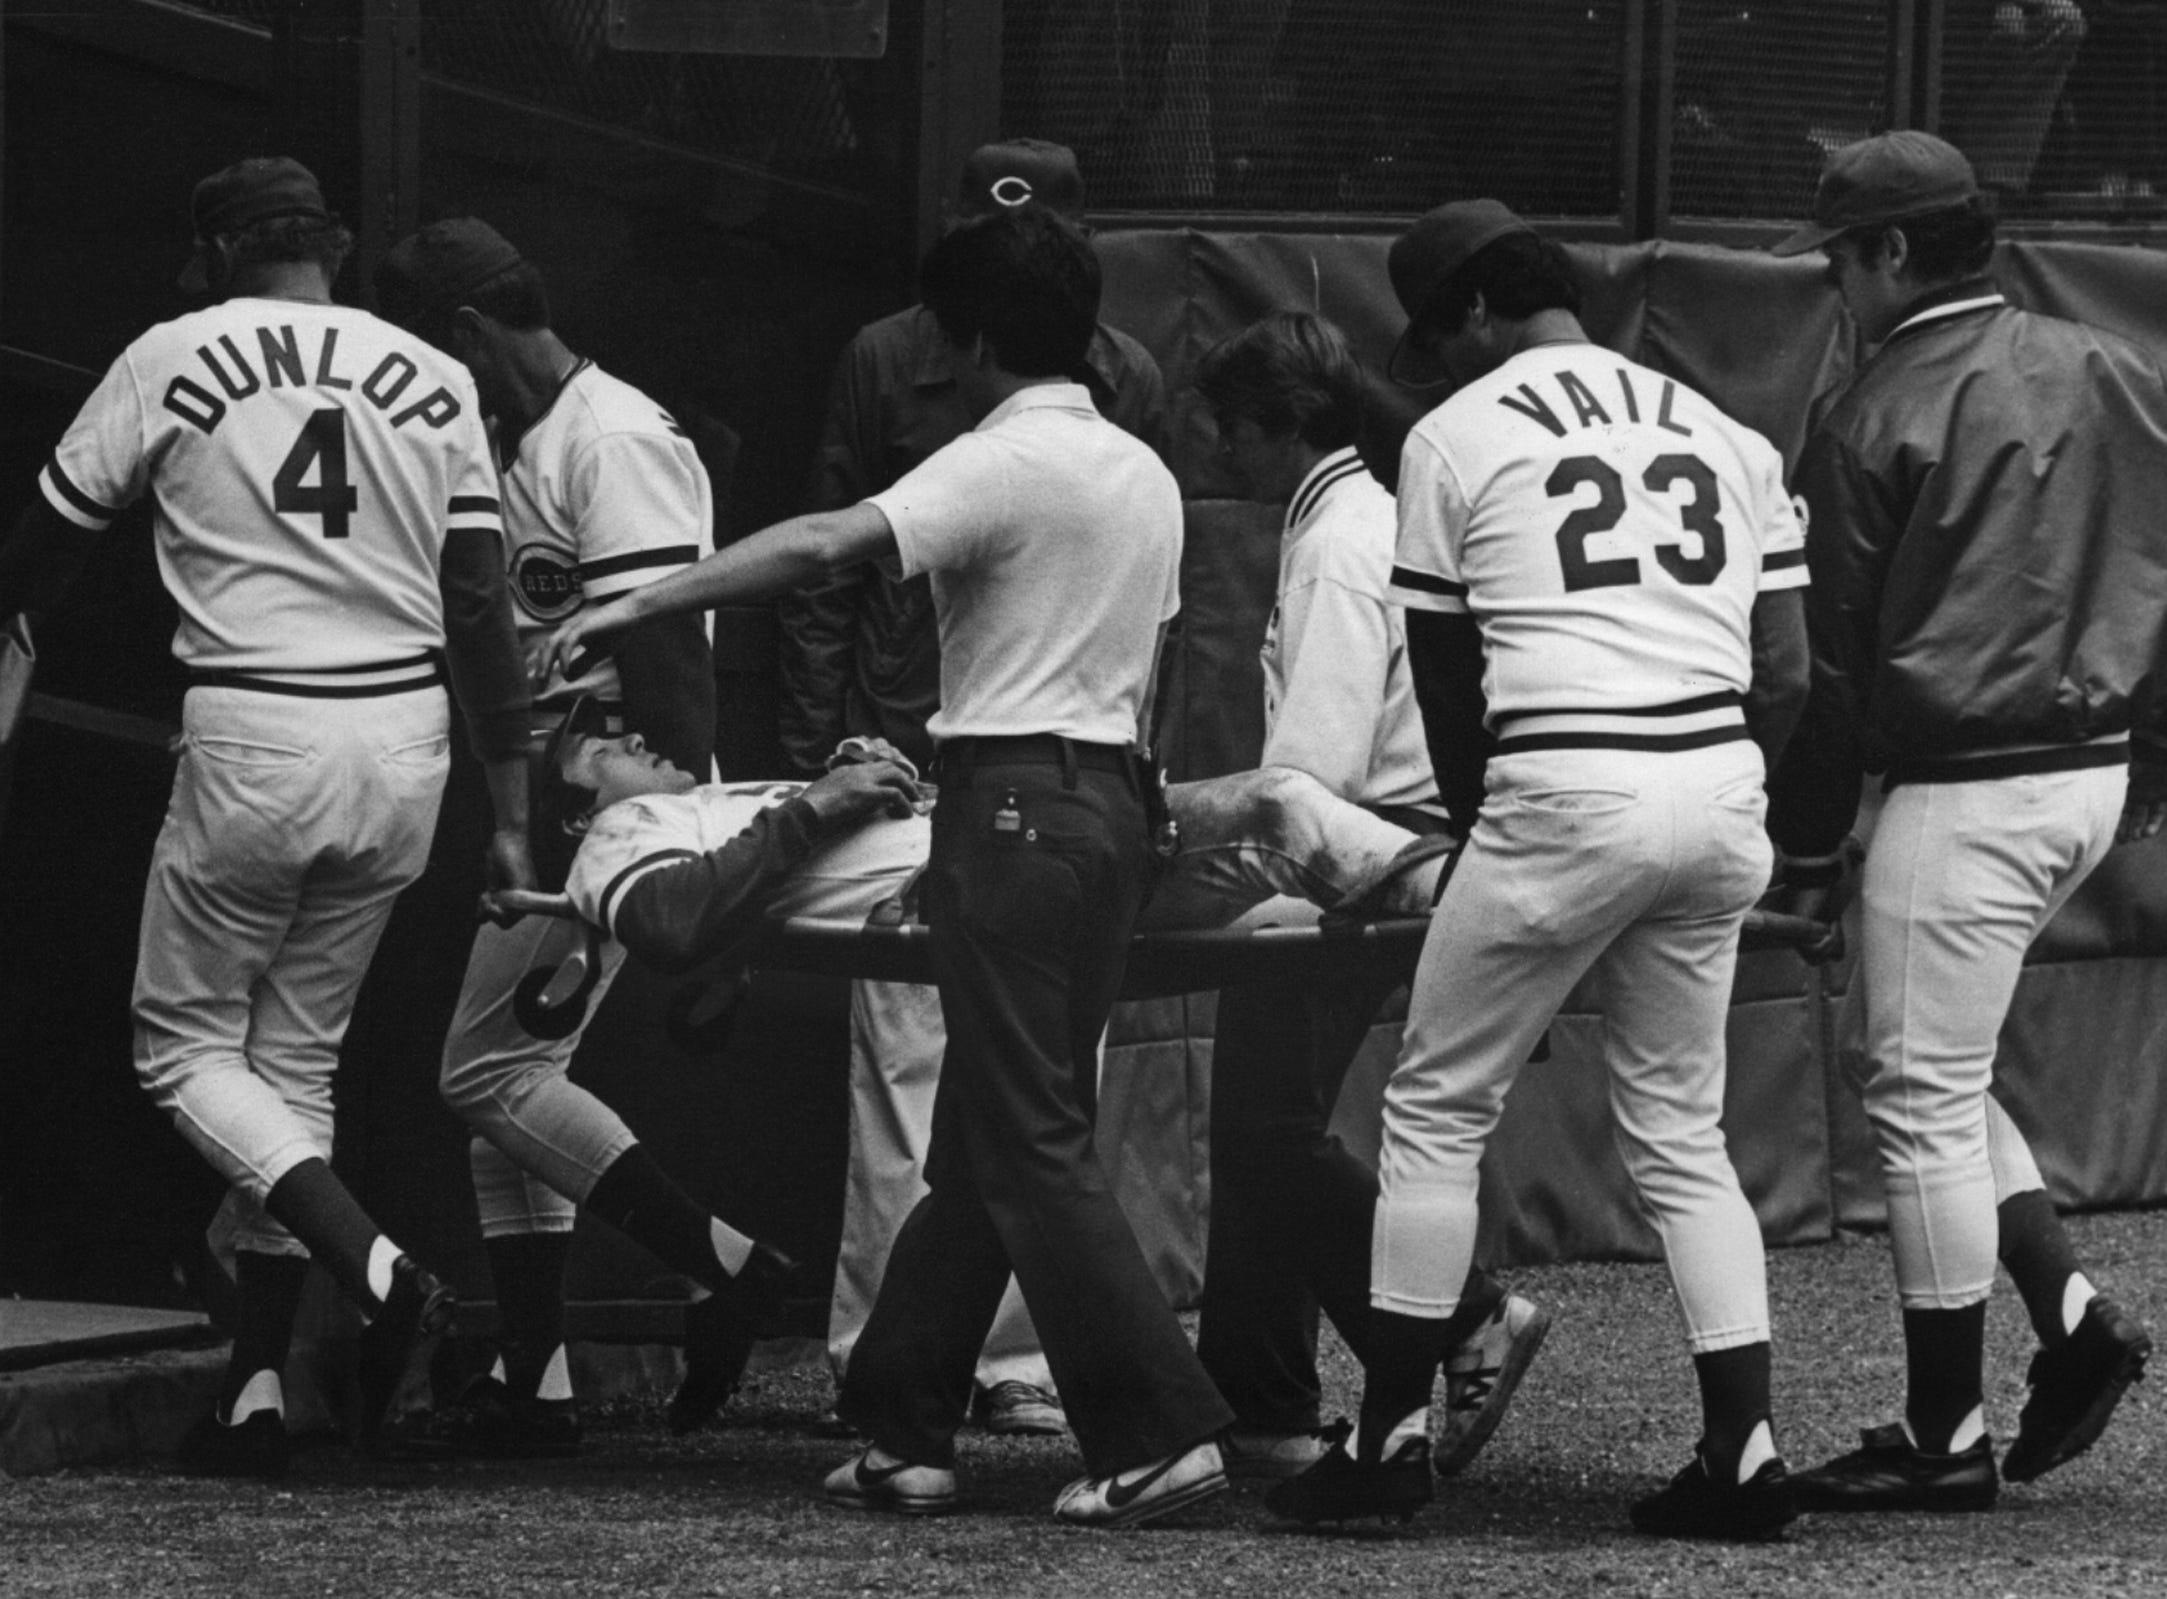 MAY 29, 1981: Johnny Bench is carried off the field on a stretcher Thursday, 5/28/81, after fracturing his left ankle sliding into second base in the seventh inning of the Reds' 7-4 victory over San Francisco. AP Photo/Ed Reinke scanned September 11, 2012